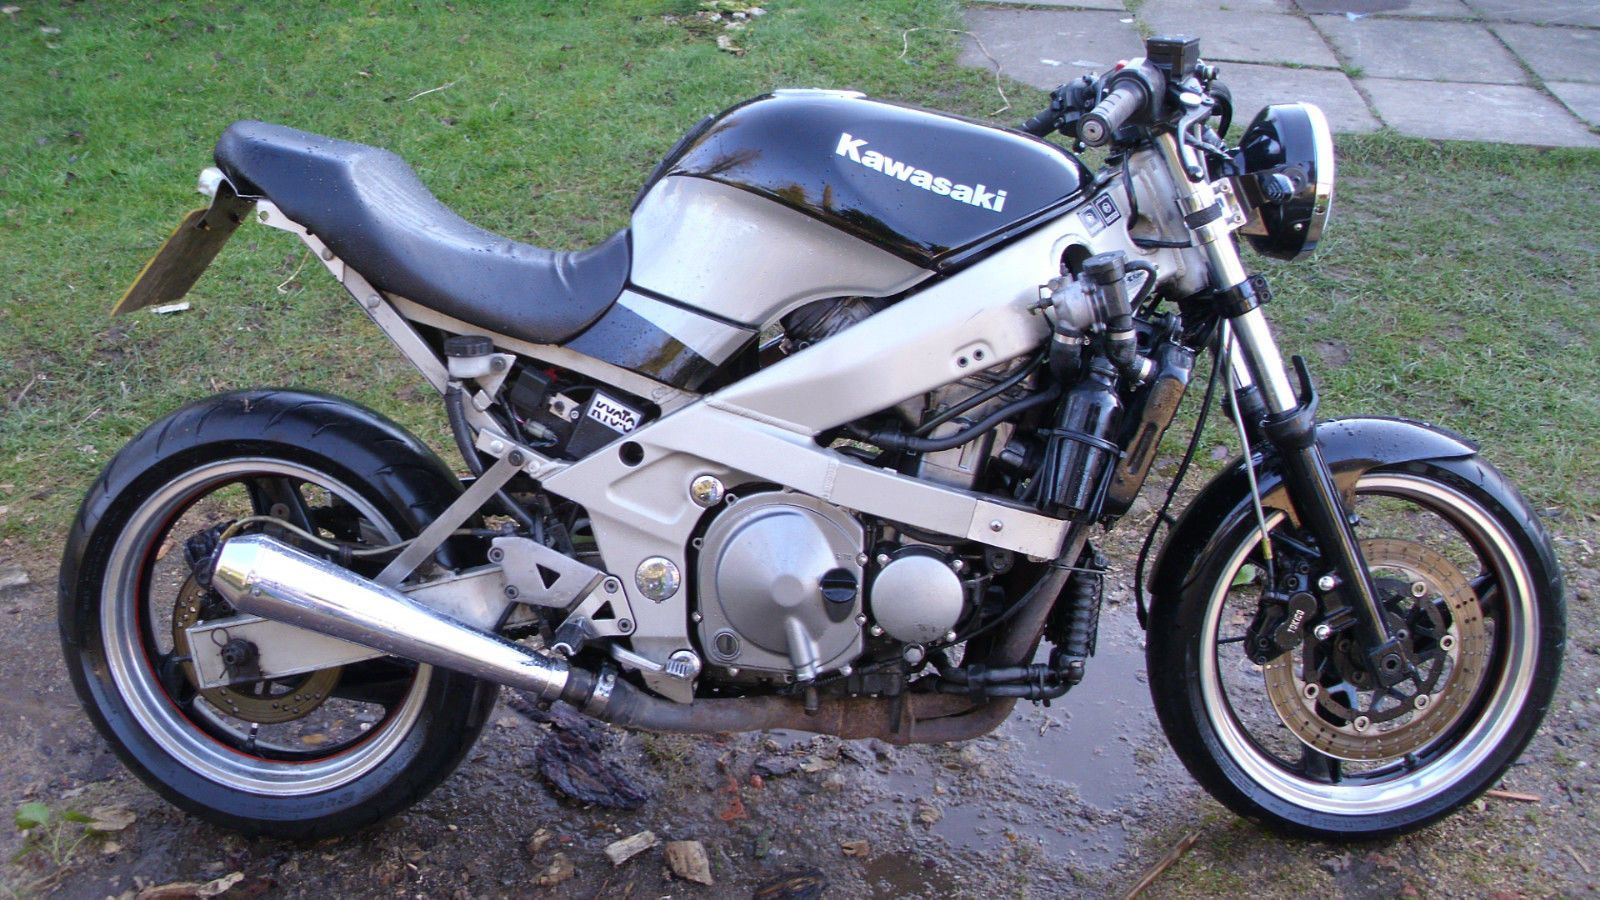 Kawasaki Zzr 600 Streetfighter Project